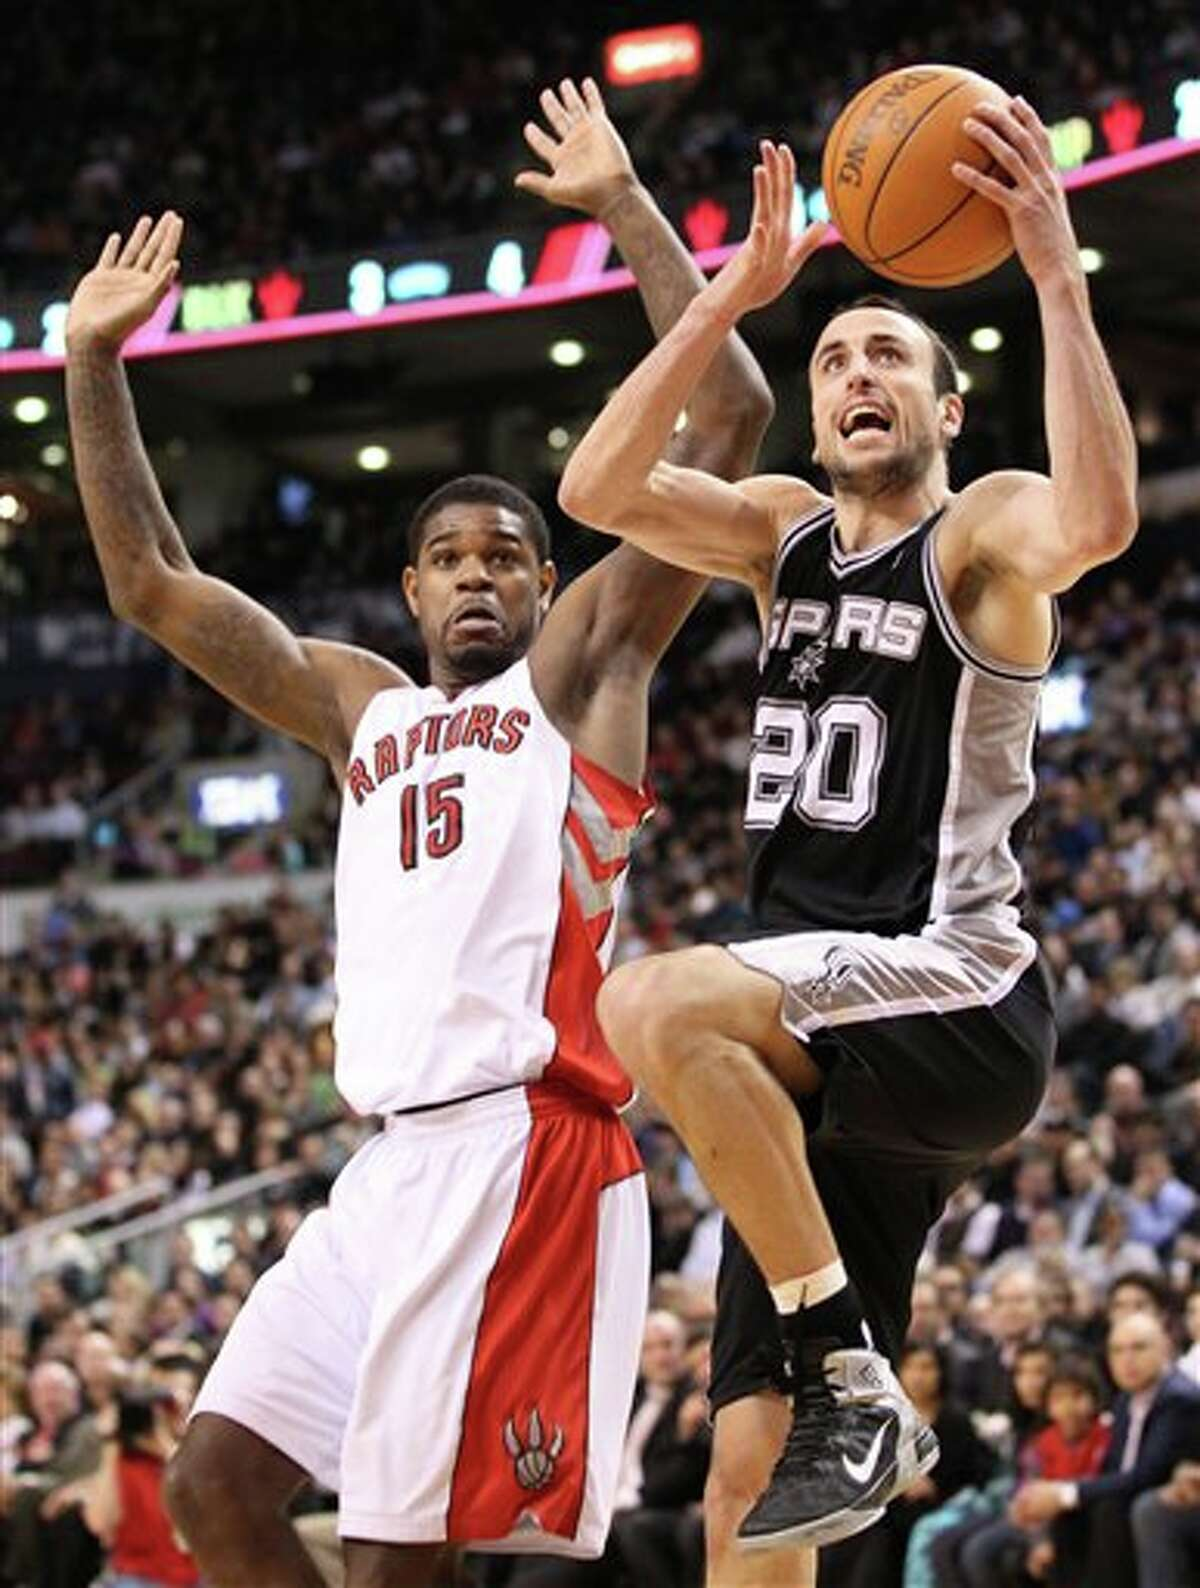 The Spurs' Manu Ginobili drives in against the Raptors' Amir Johnson on Wednesday in Toronto.